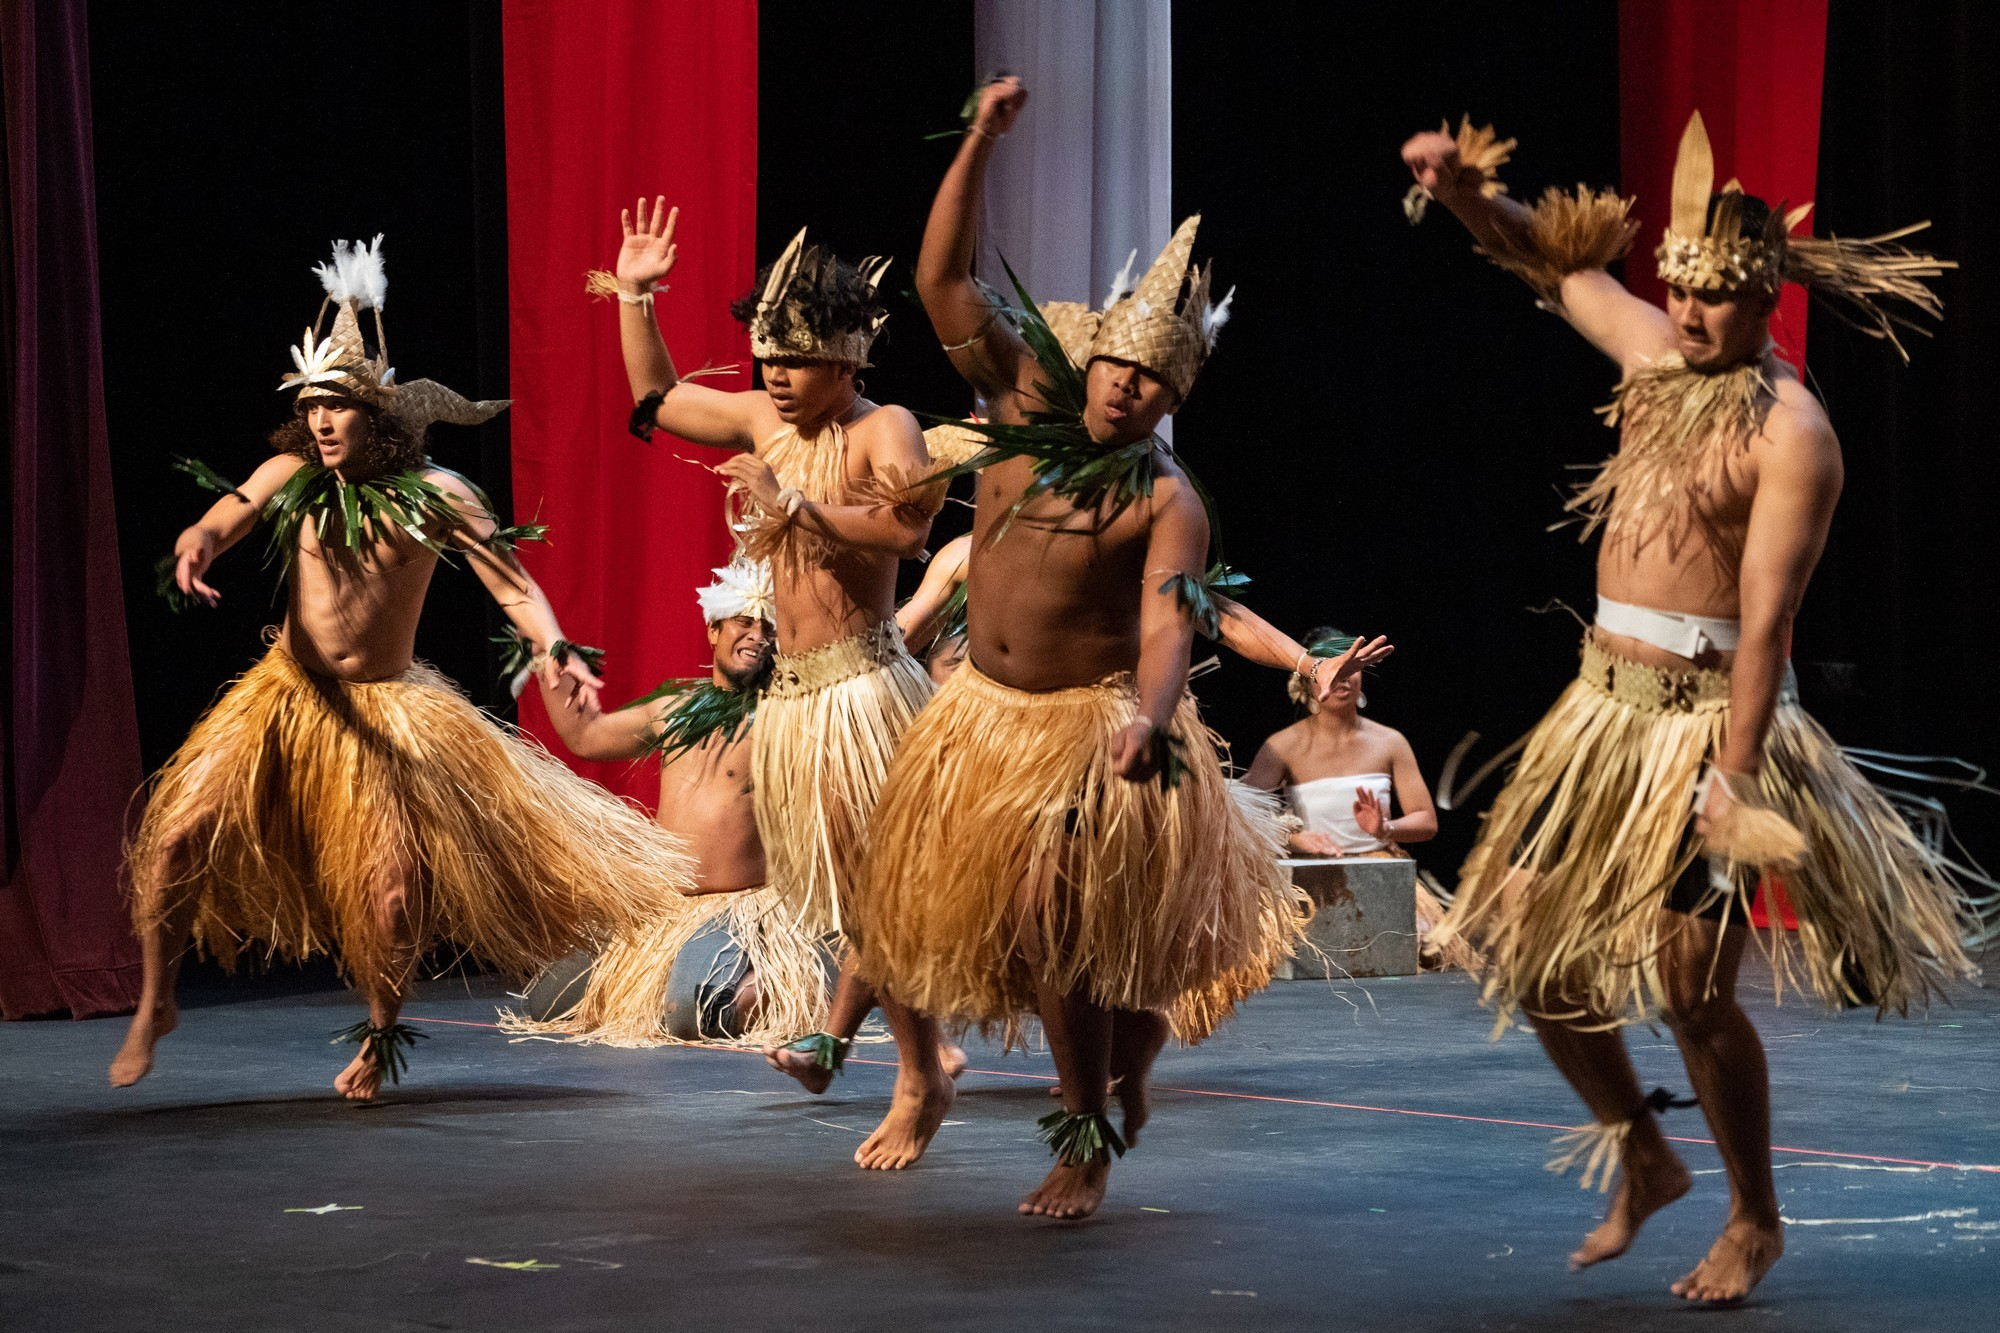 Male dancers in grass skirts and head dresses.